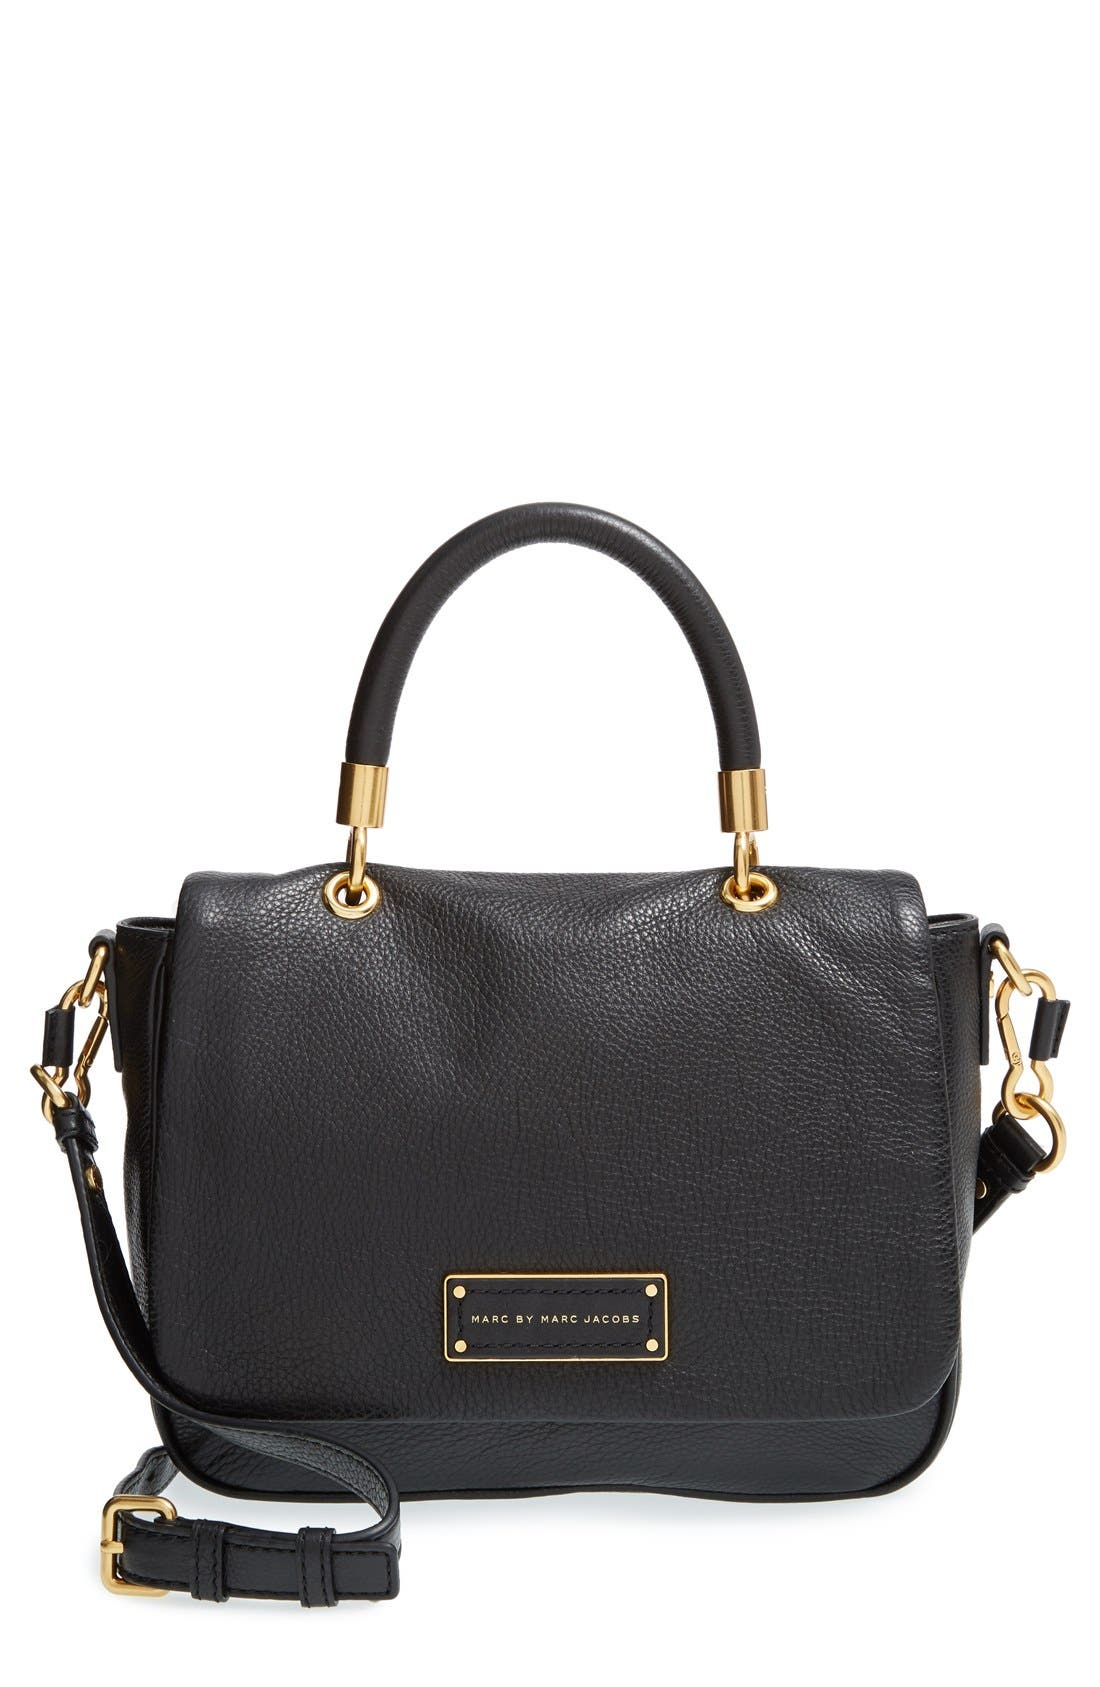 Alternate Image 1 Selected - MARC BY MARC JACOBS 'Small Too Hot To Handle' Leather Tote